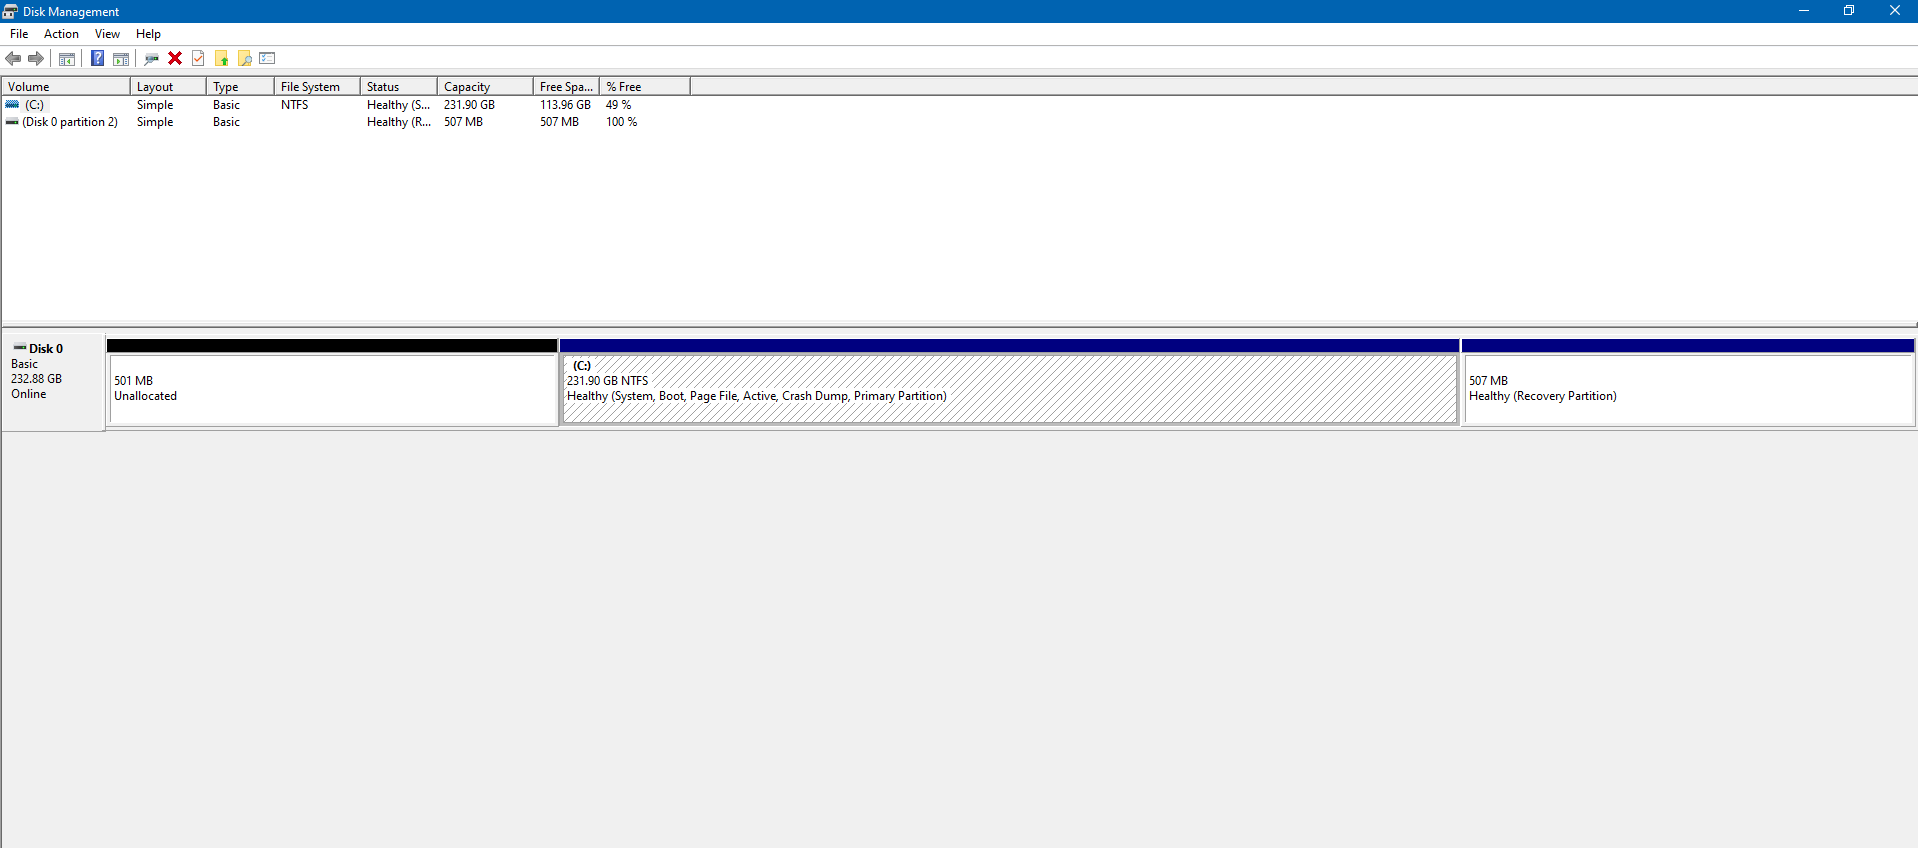 PARTITION A HARD DRIVE AND CREATE MULTIPLE PARTITIONS